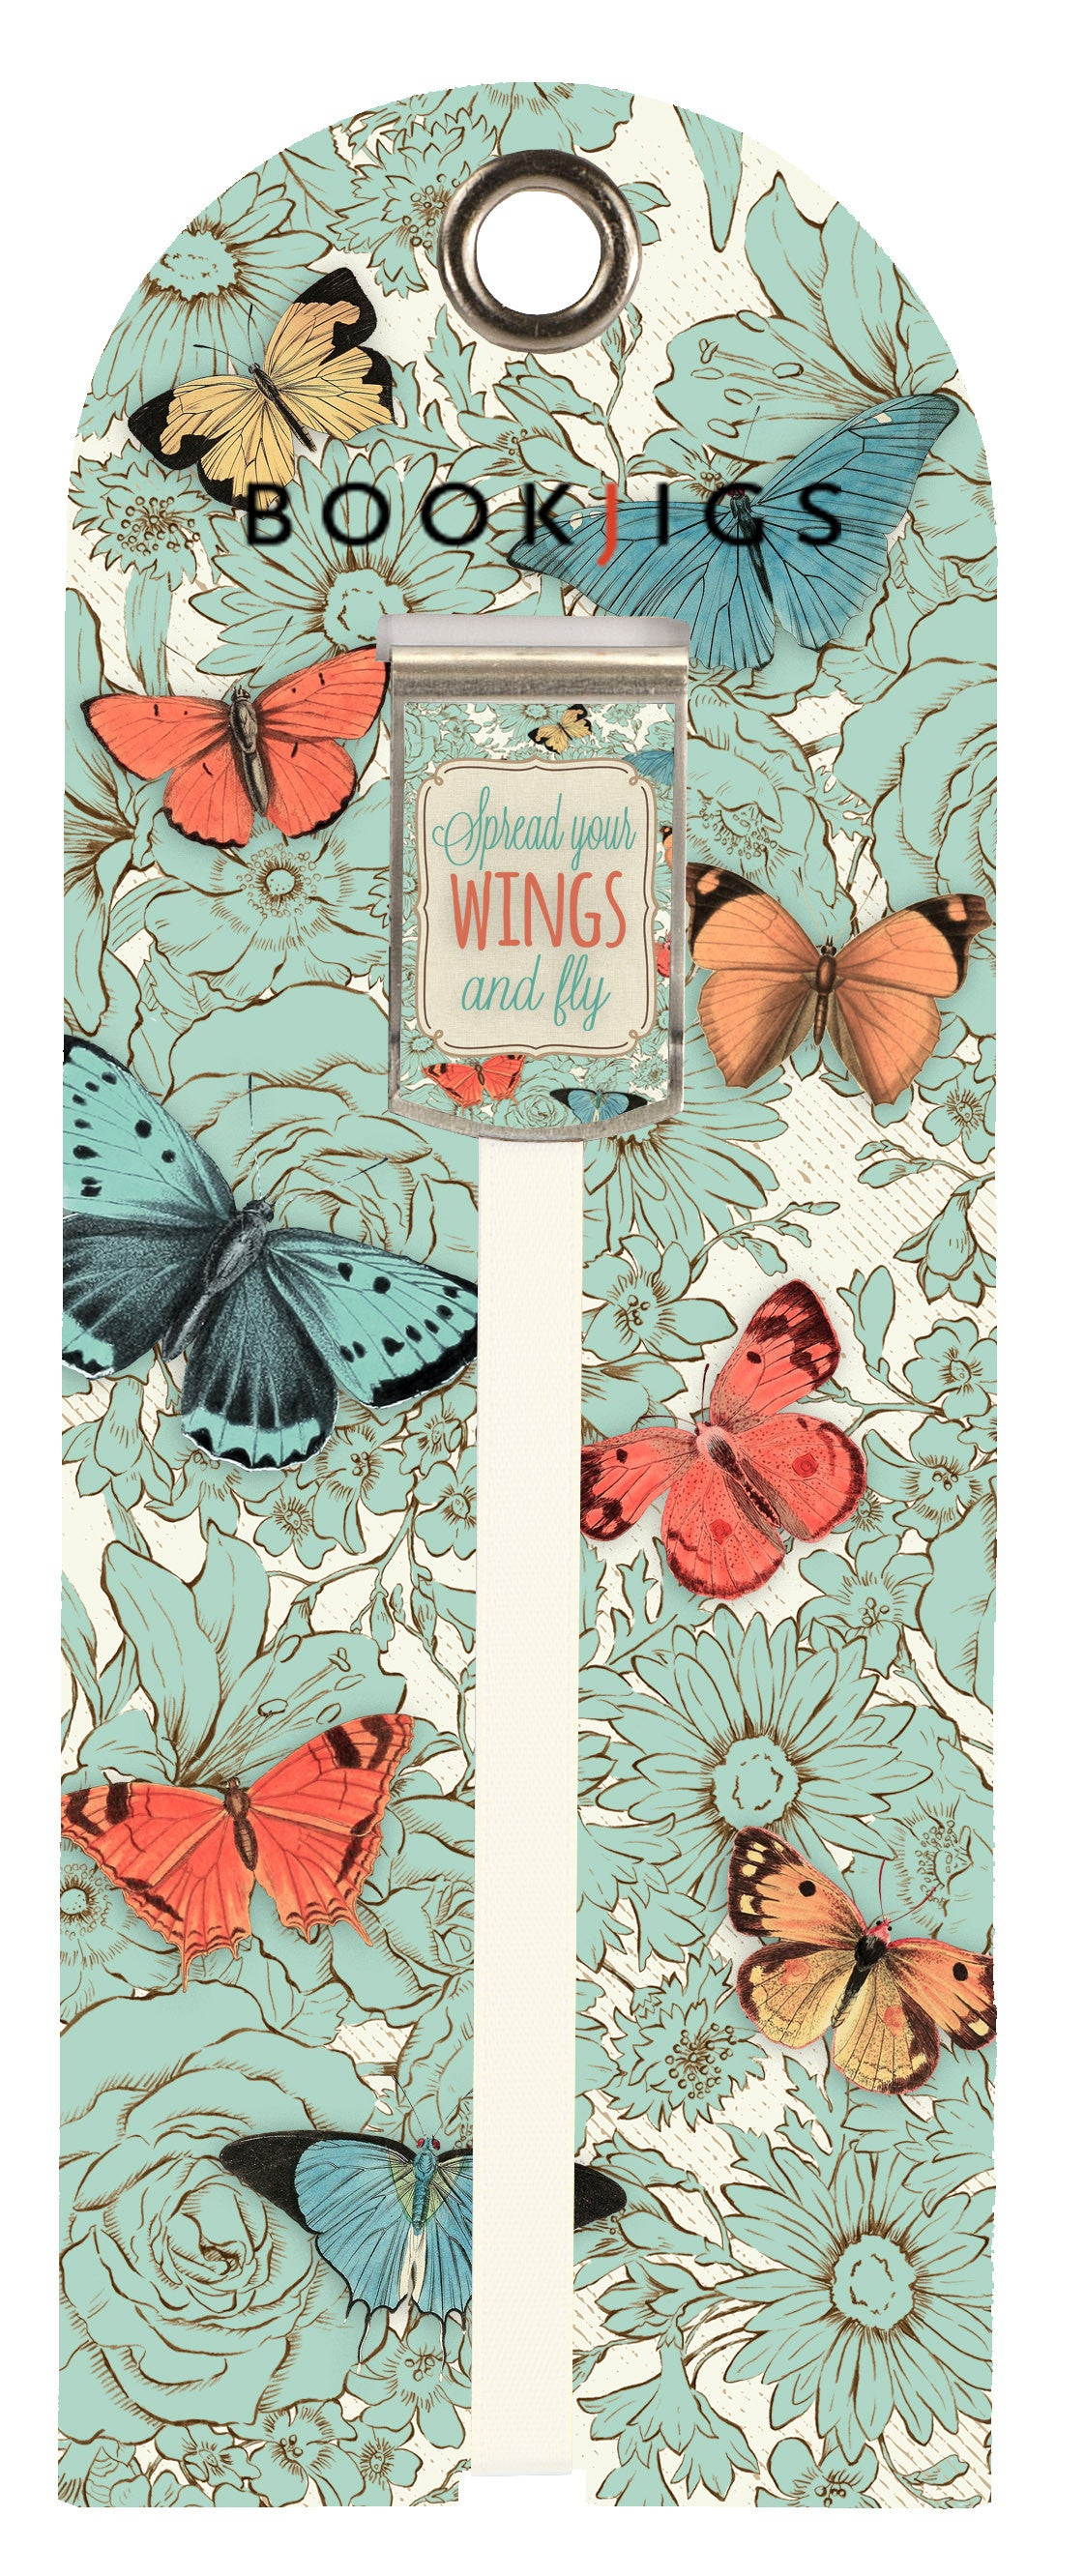 Wings - Bookjig